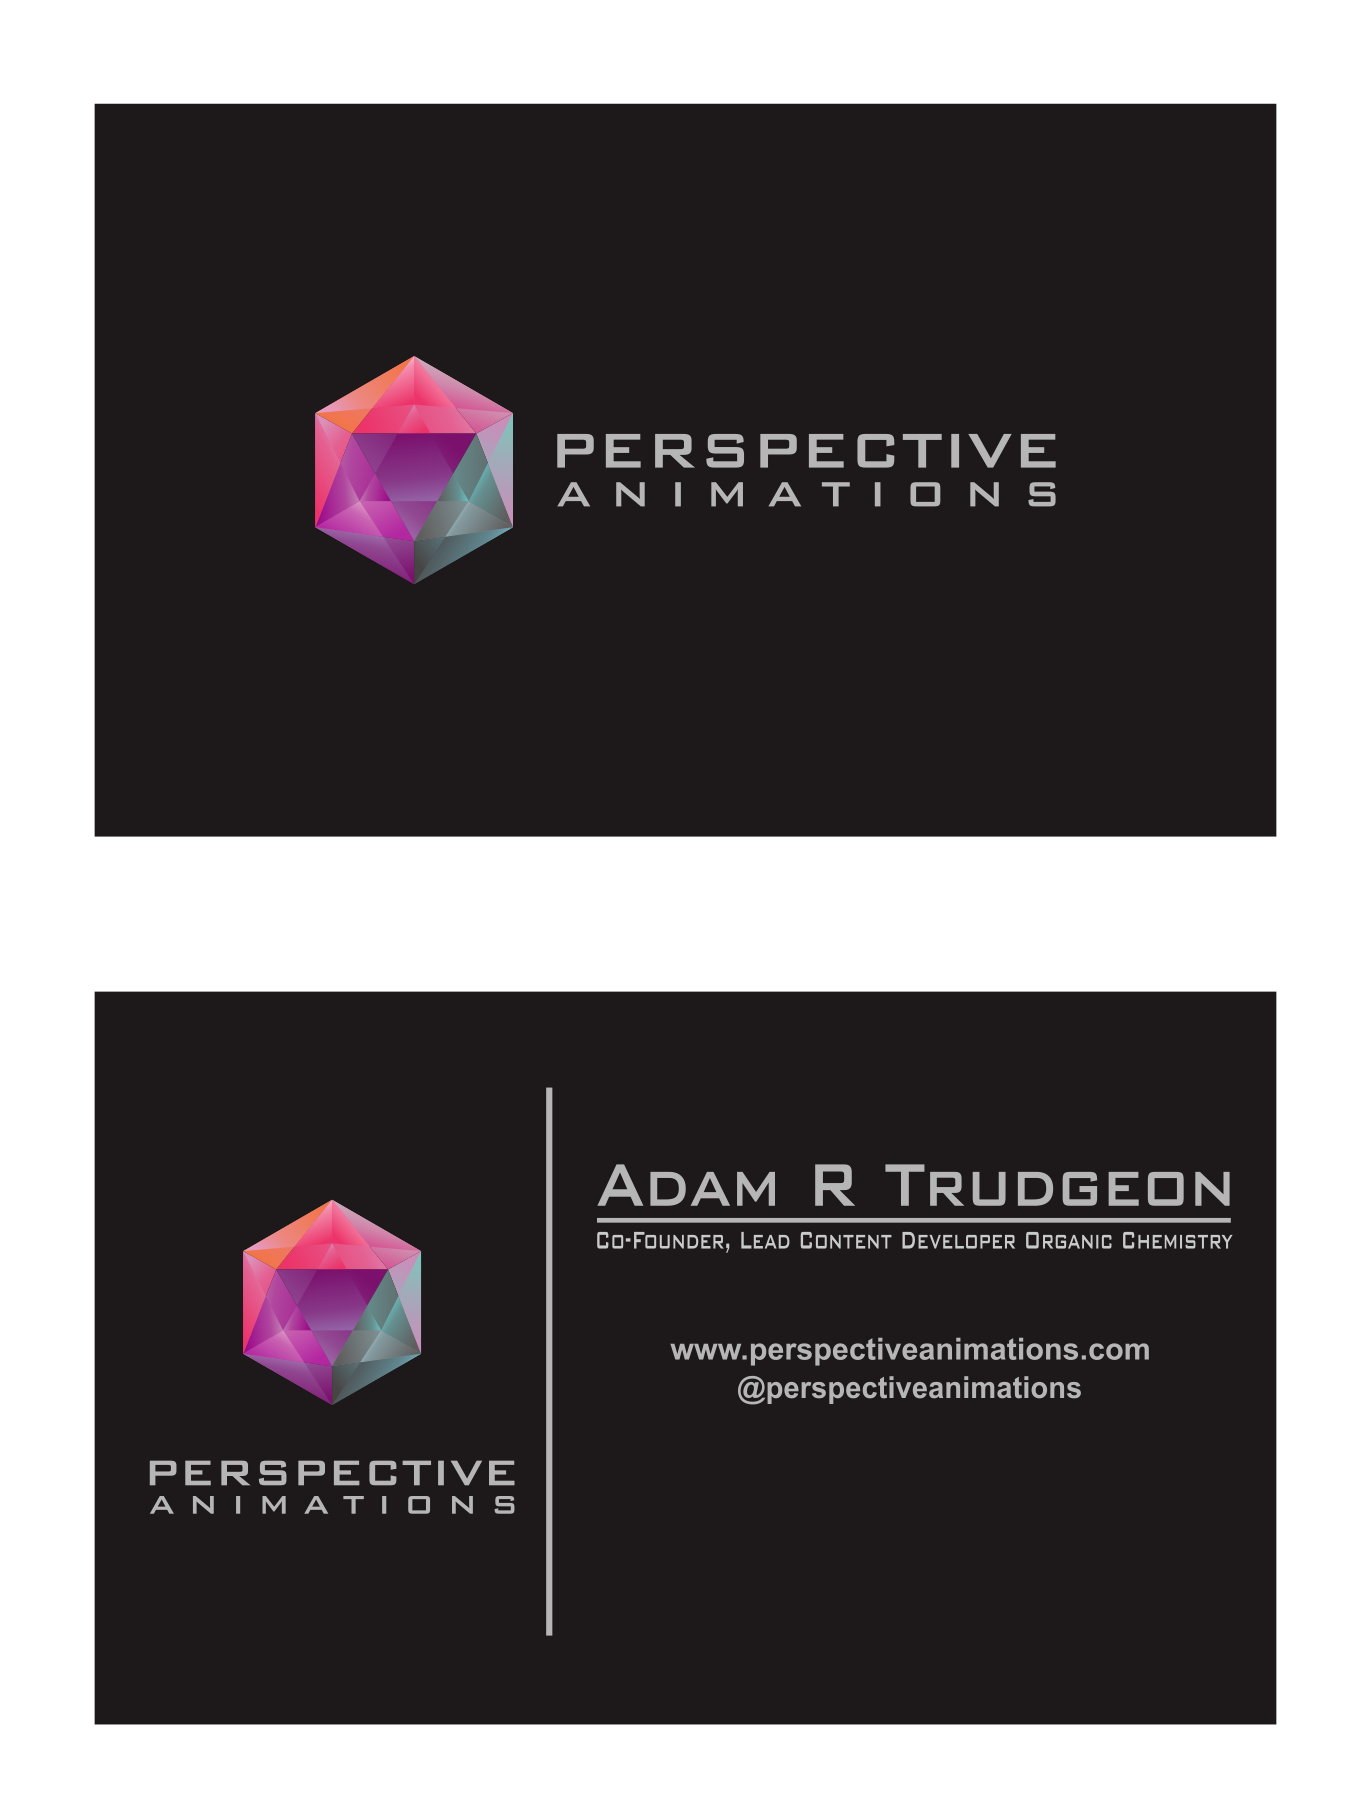 Business Card for Perspective Animations